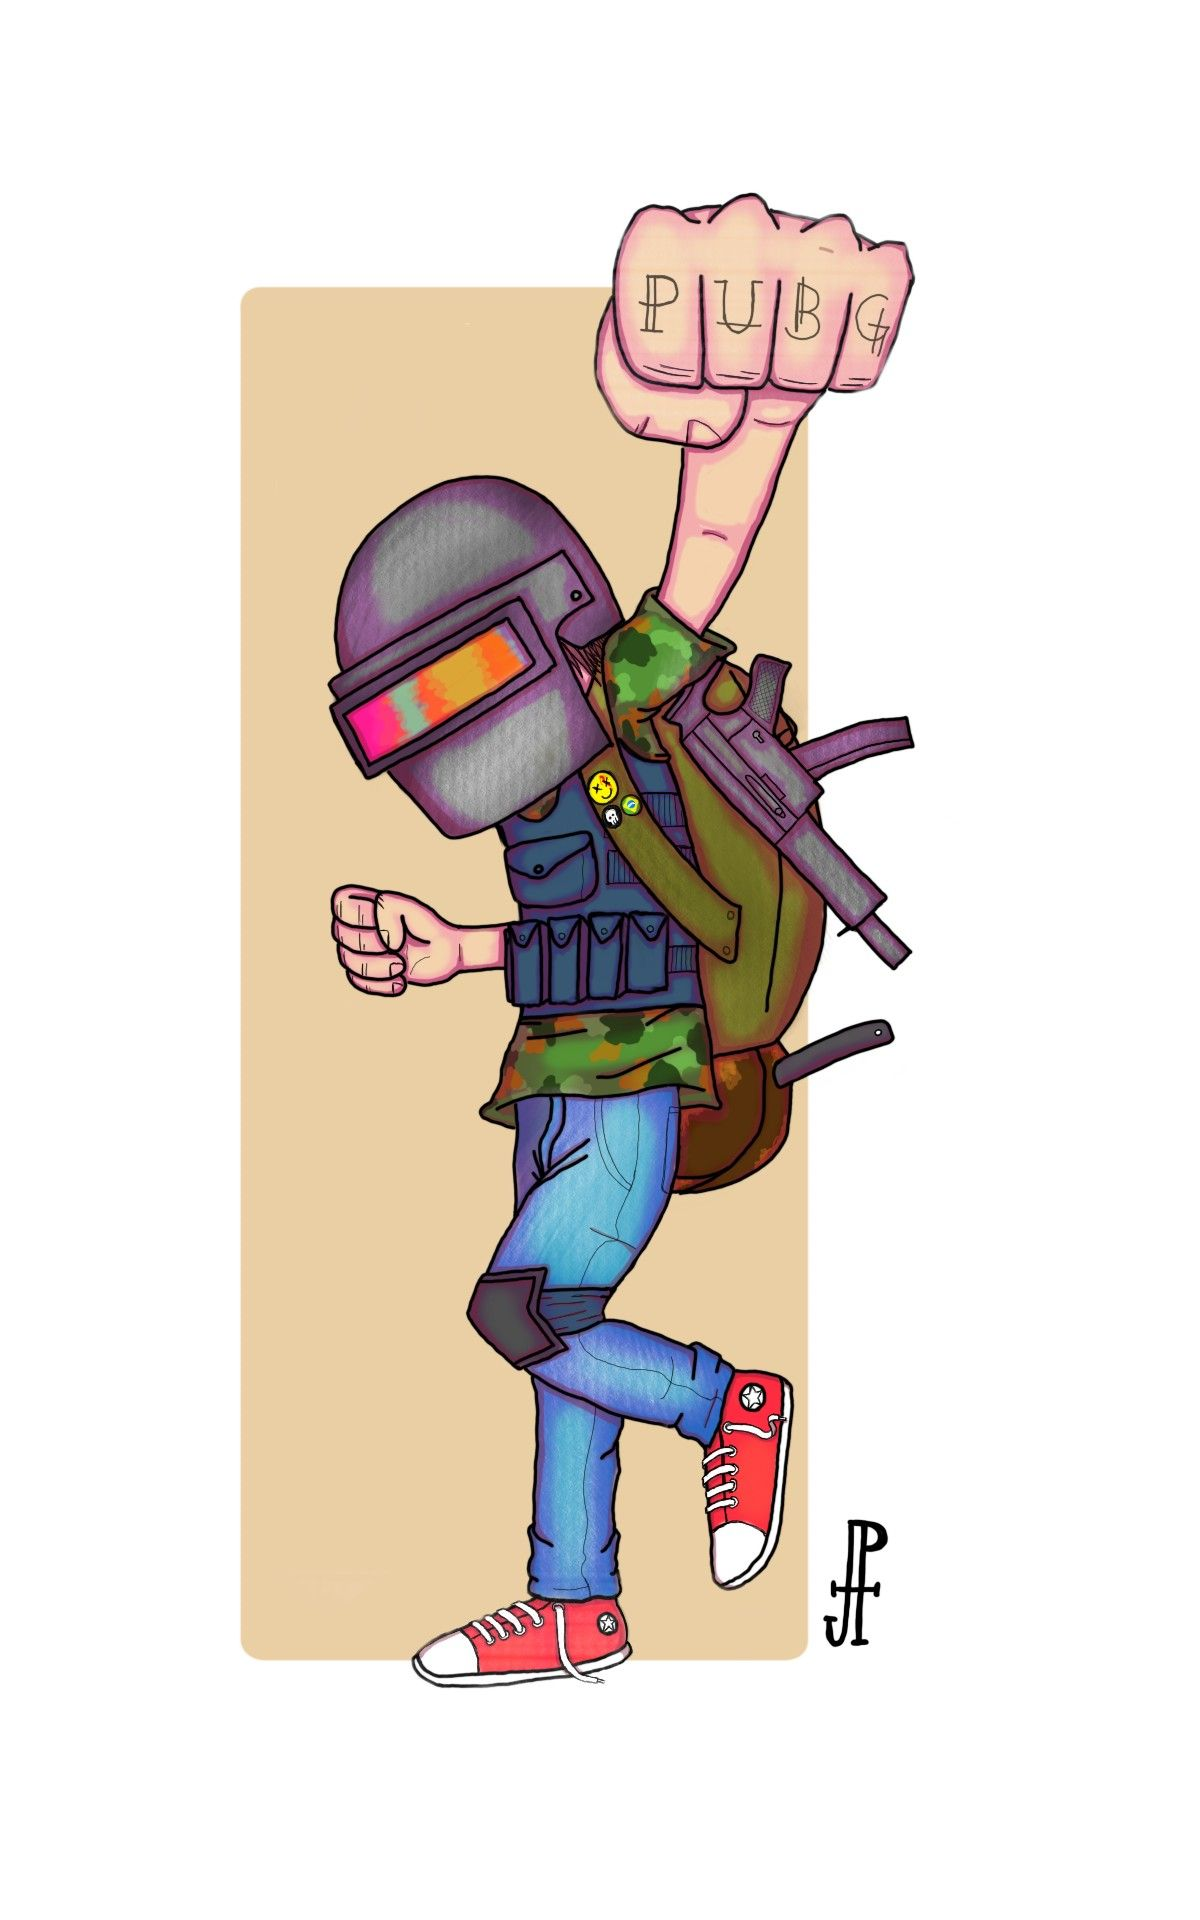 Fanart Do Jogo Pubg Moreartlesscopy Pubg Gaming Wallpapers - fanart do jogo pubg moreartlesscopy